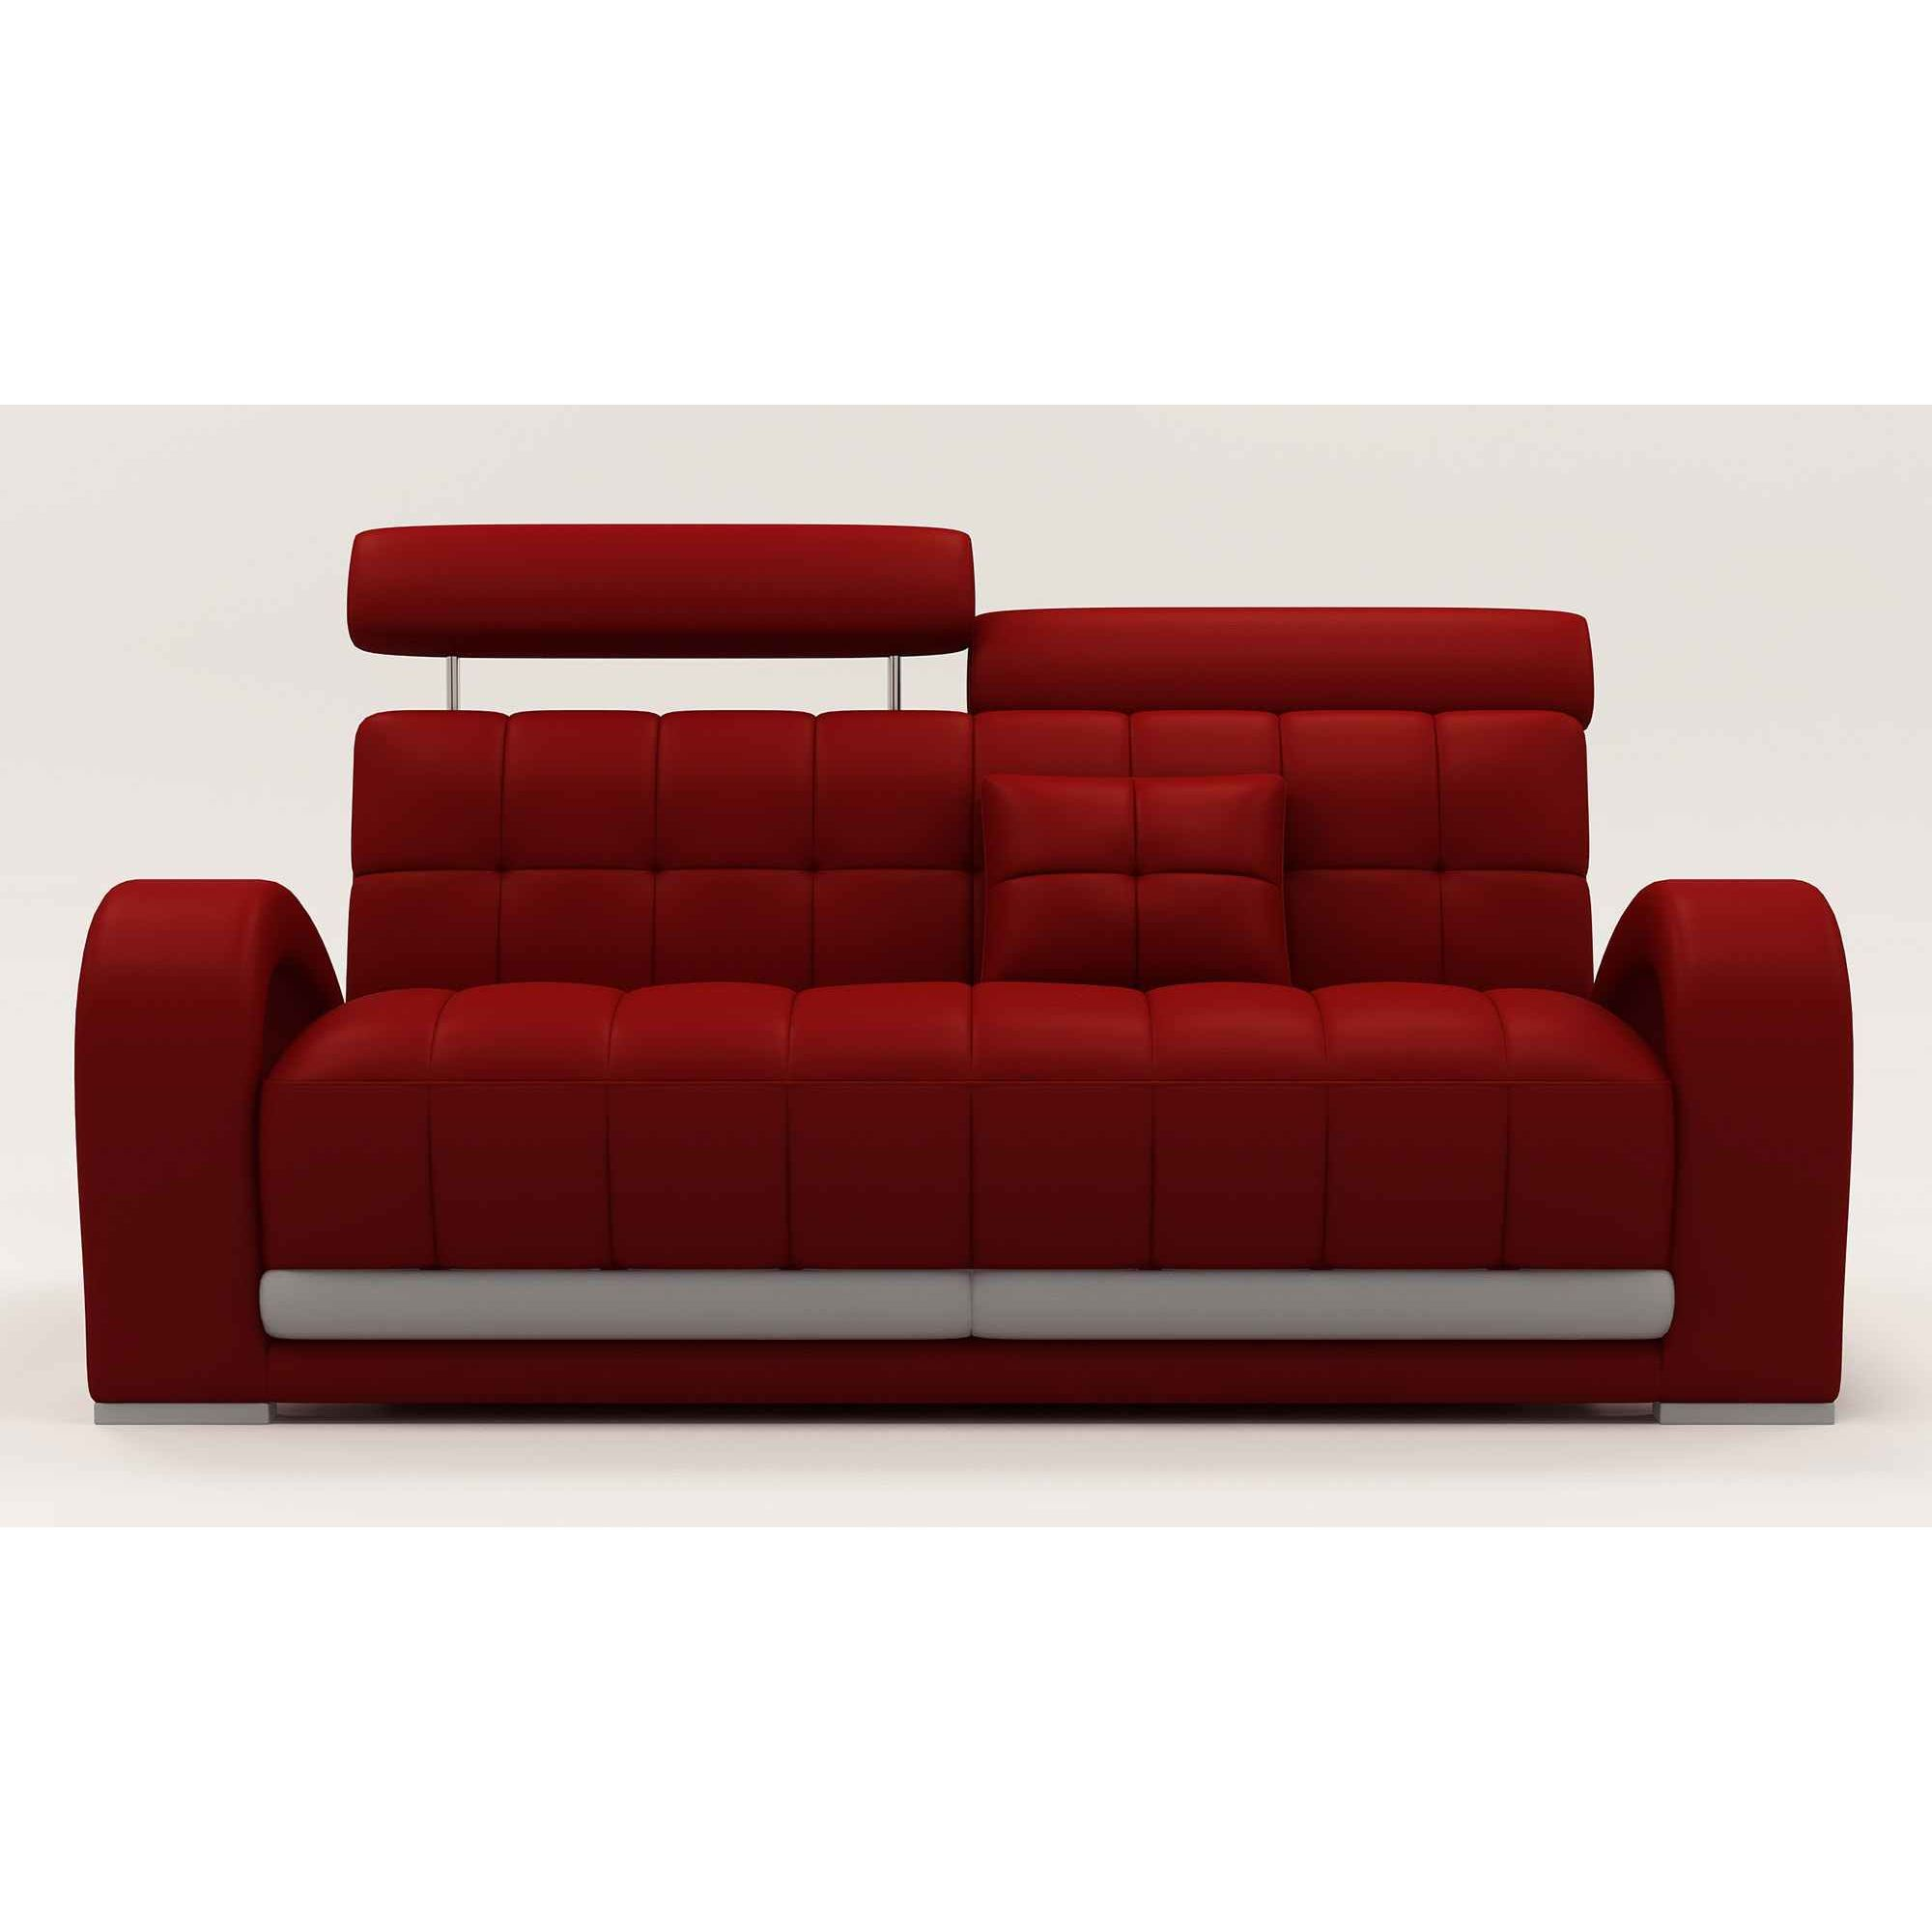 Deco in paris canape cuir rouge 3 places verdi can verdi 3p pu rouge - Canape cuir rouge 3 places ...